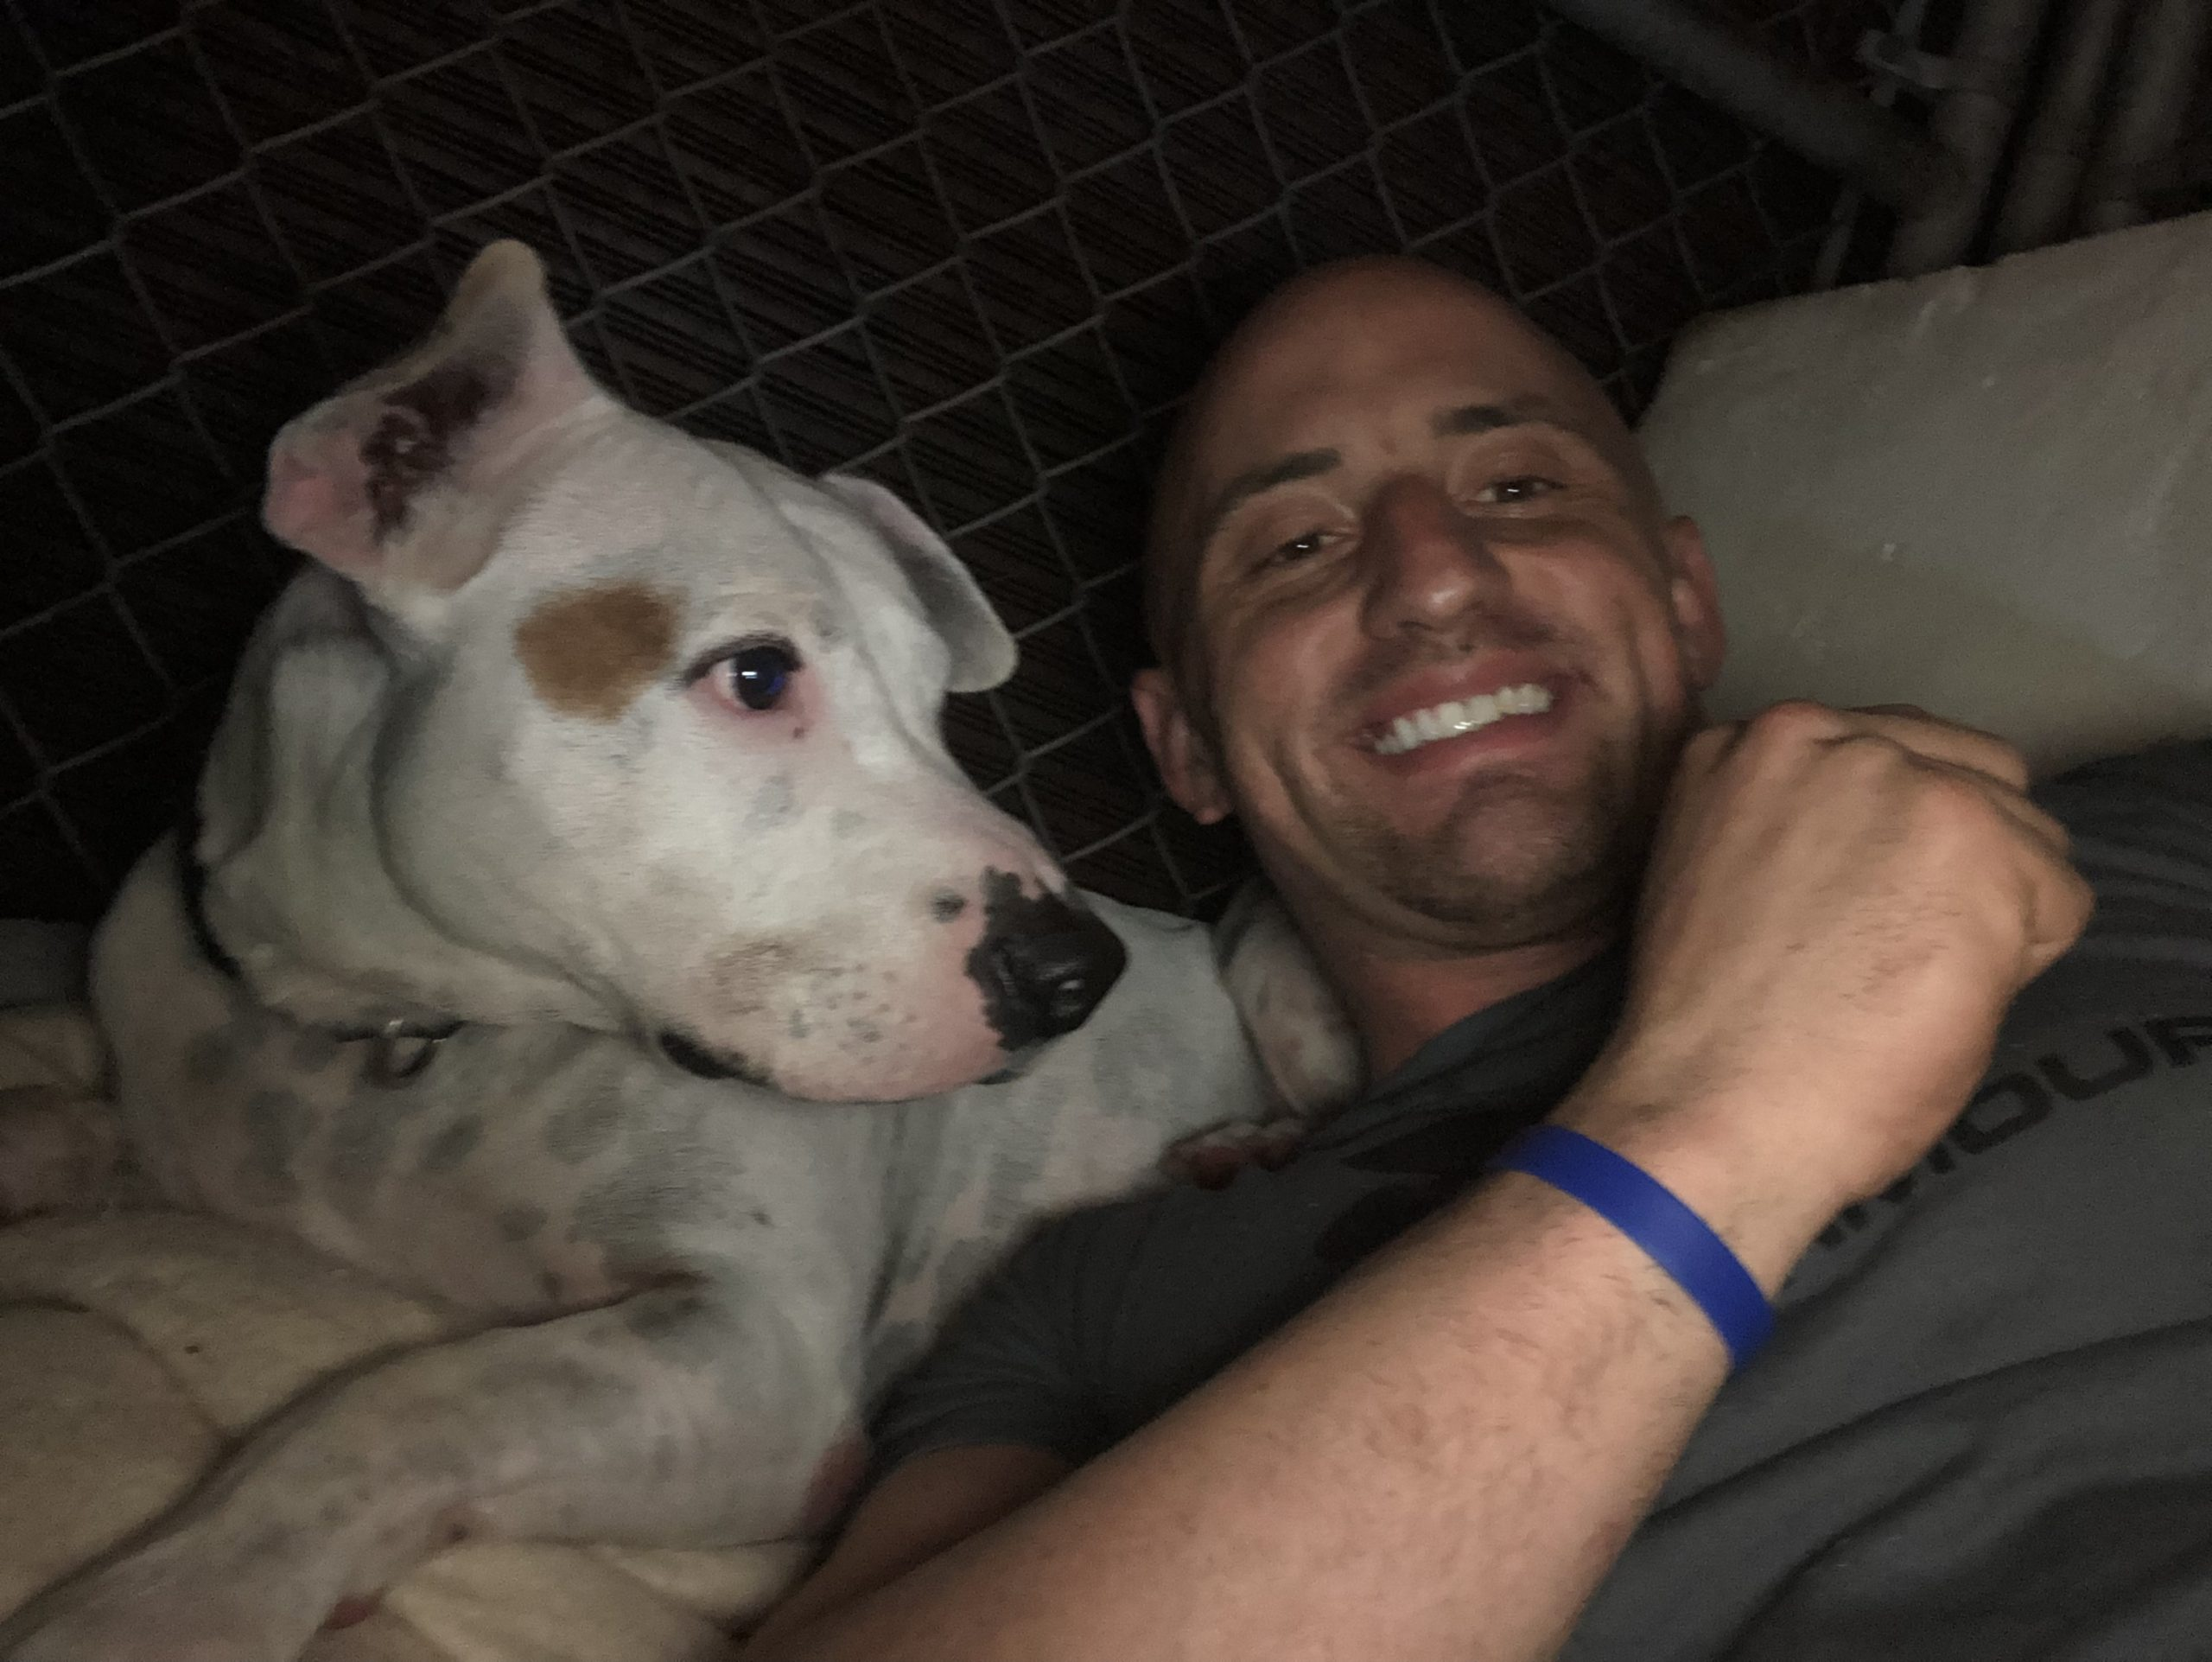 Man Slept at Animal Shelter to Help Pets Get Adopted | Florida News